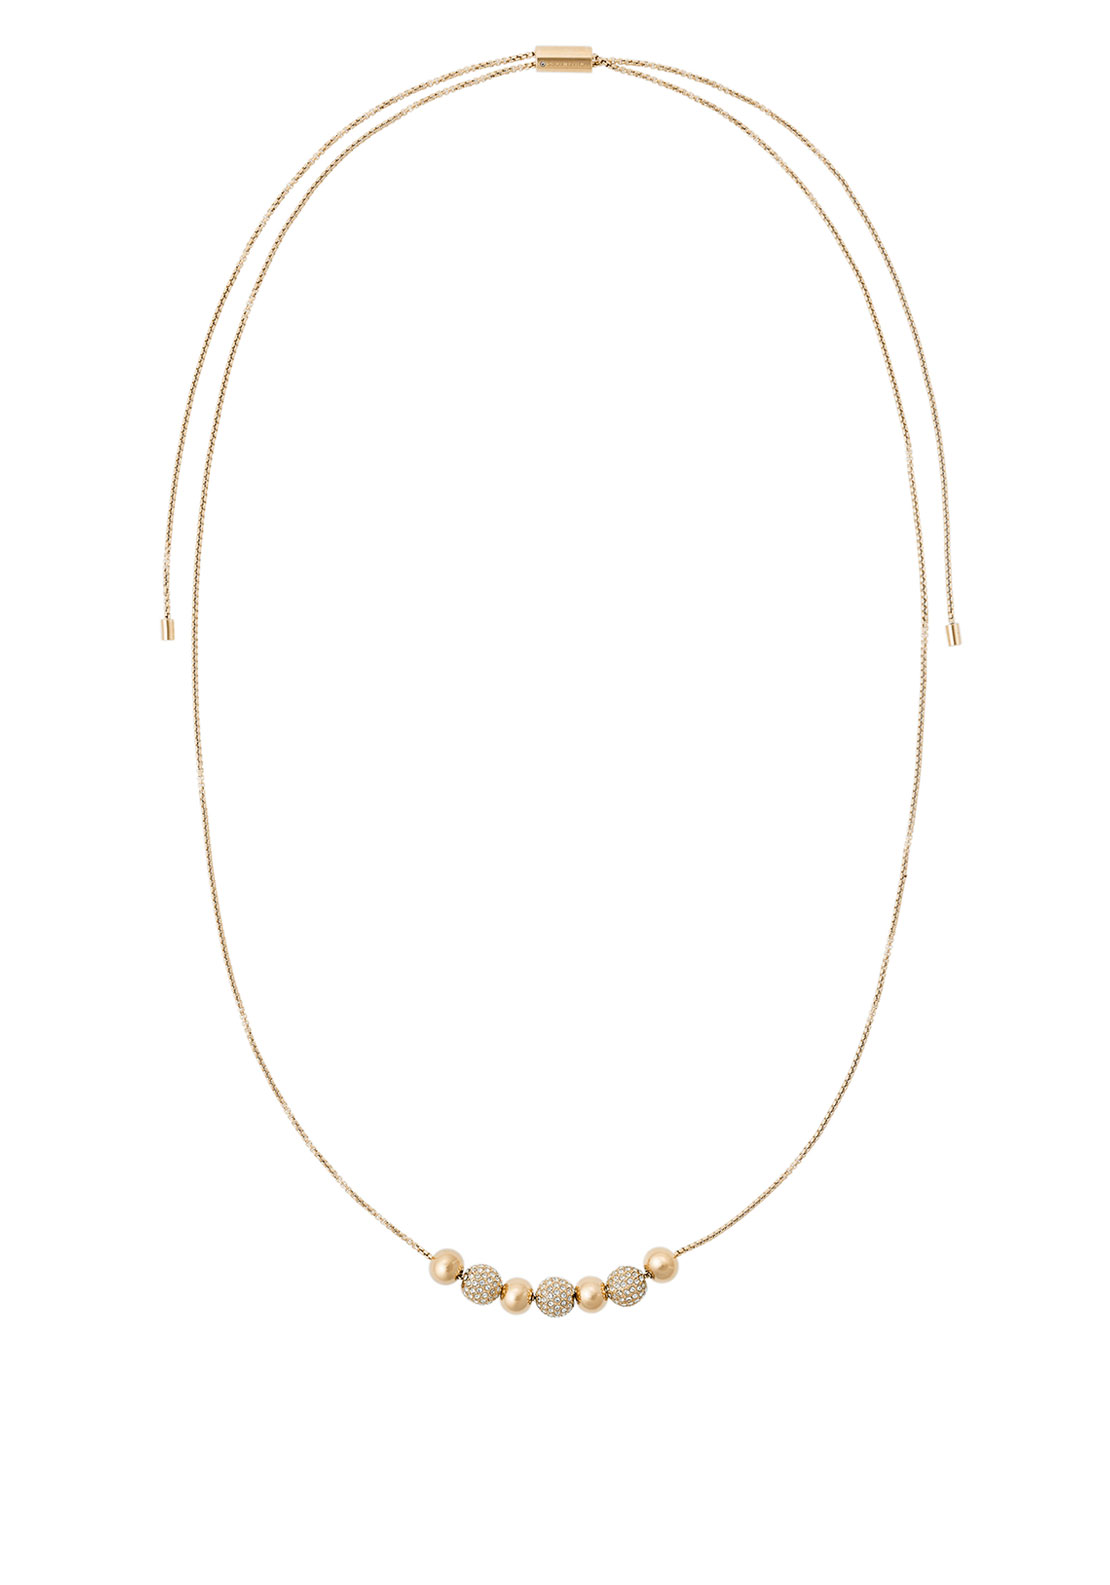 Michael Kors Necklace, Gold